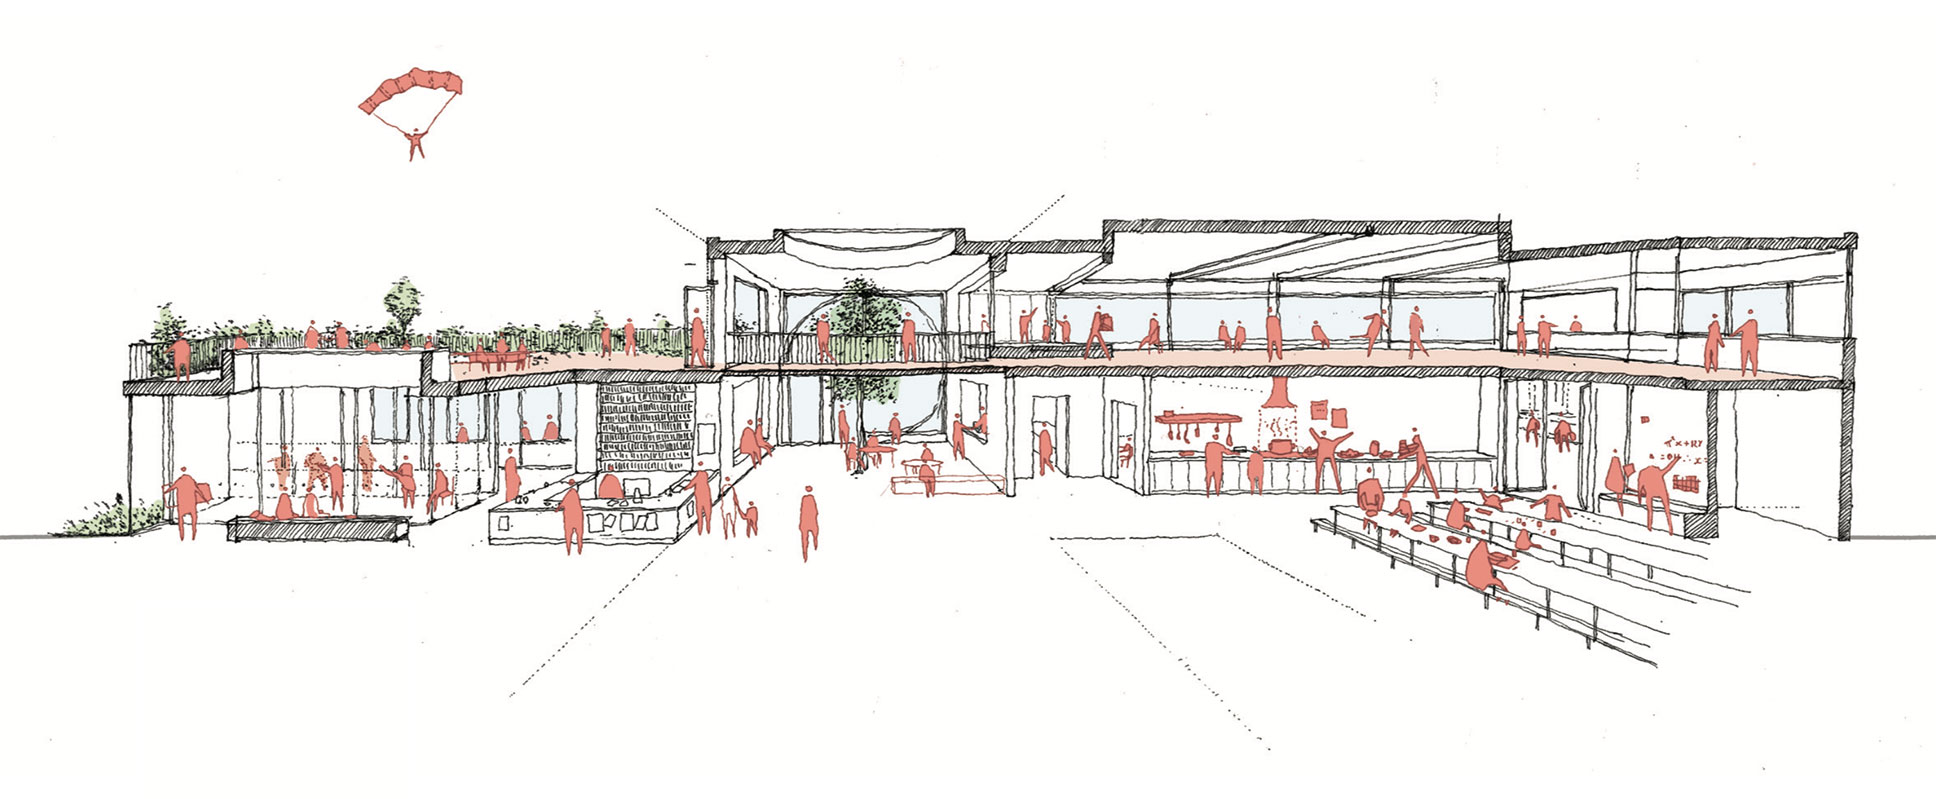 Section showing double-height entrance foyer with Suzuki music school to the left and community kitchen and dining space to the right.